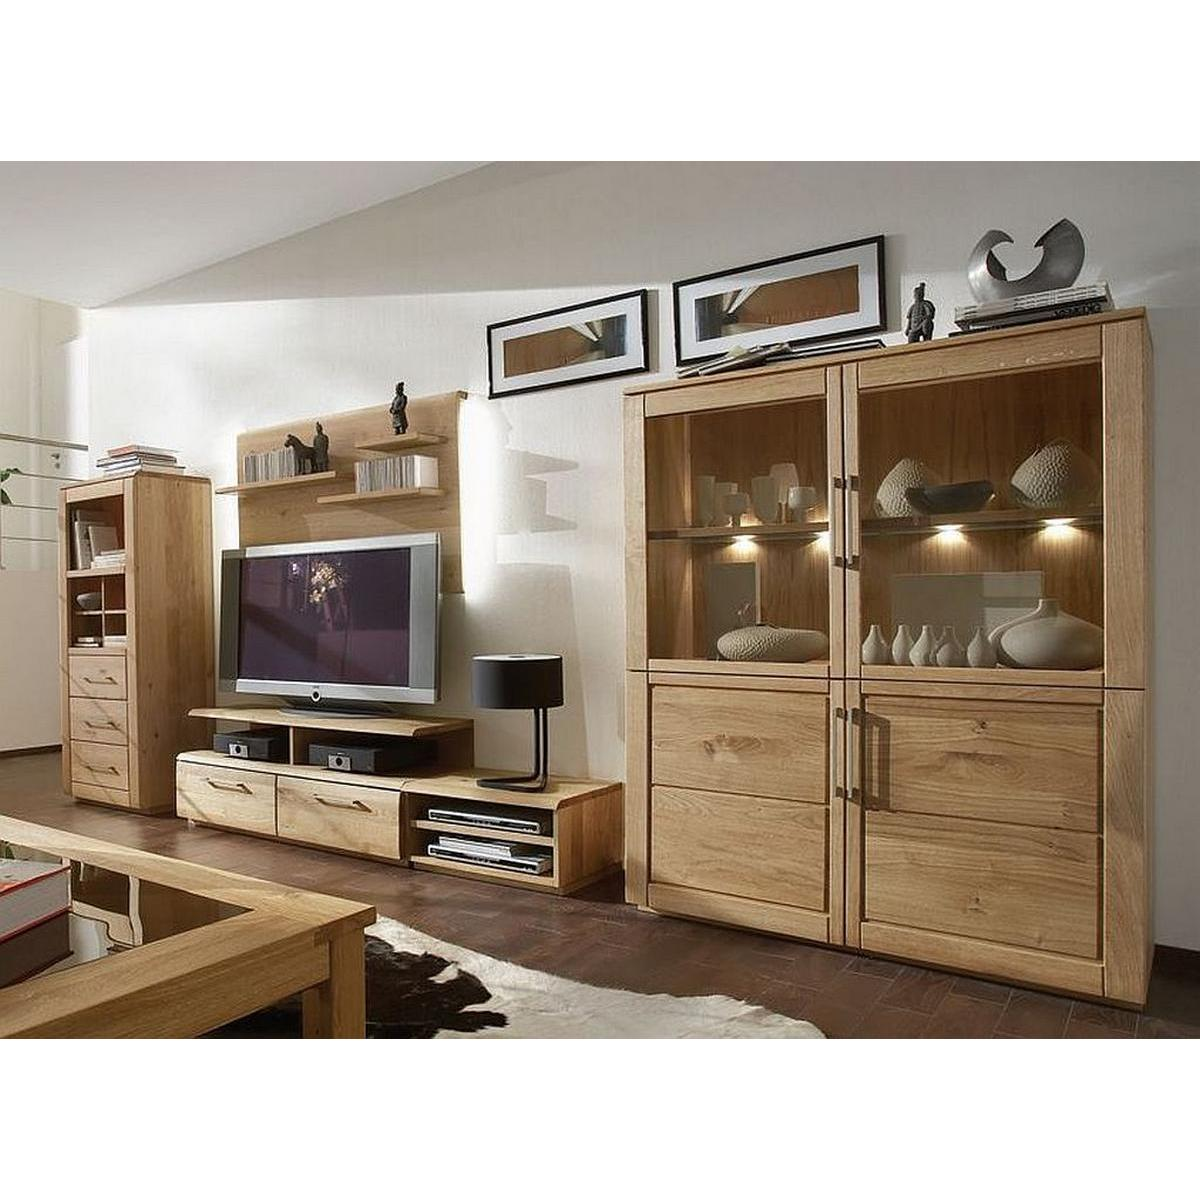 massivholz standregal mit einsatz oxford wildeiche massiv natur ge lt. Black Bedroom Furniture Sets. Home Design Ideas